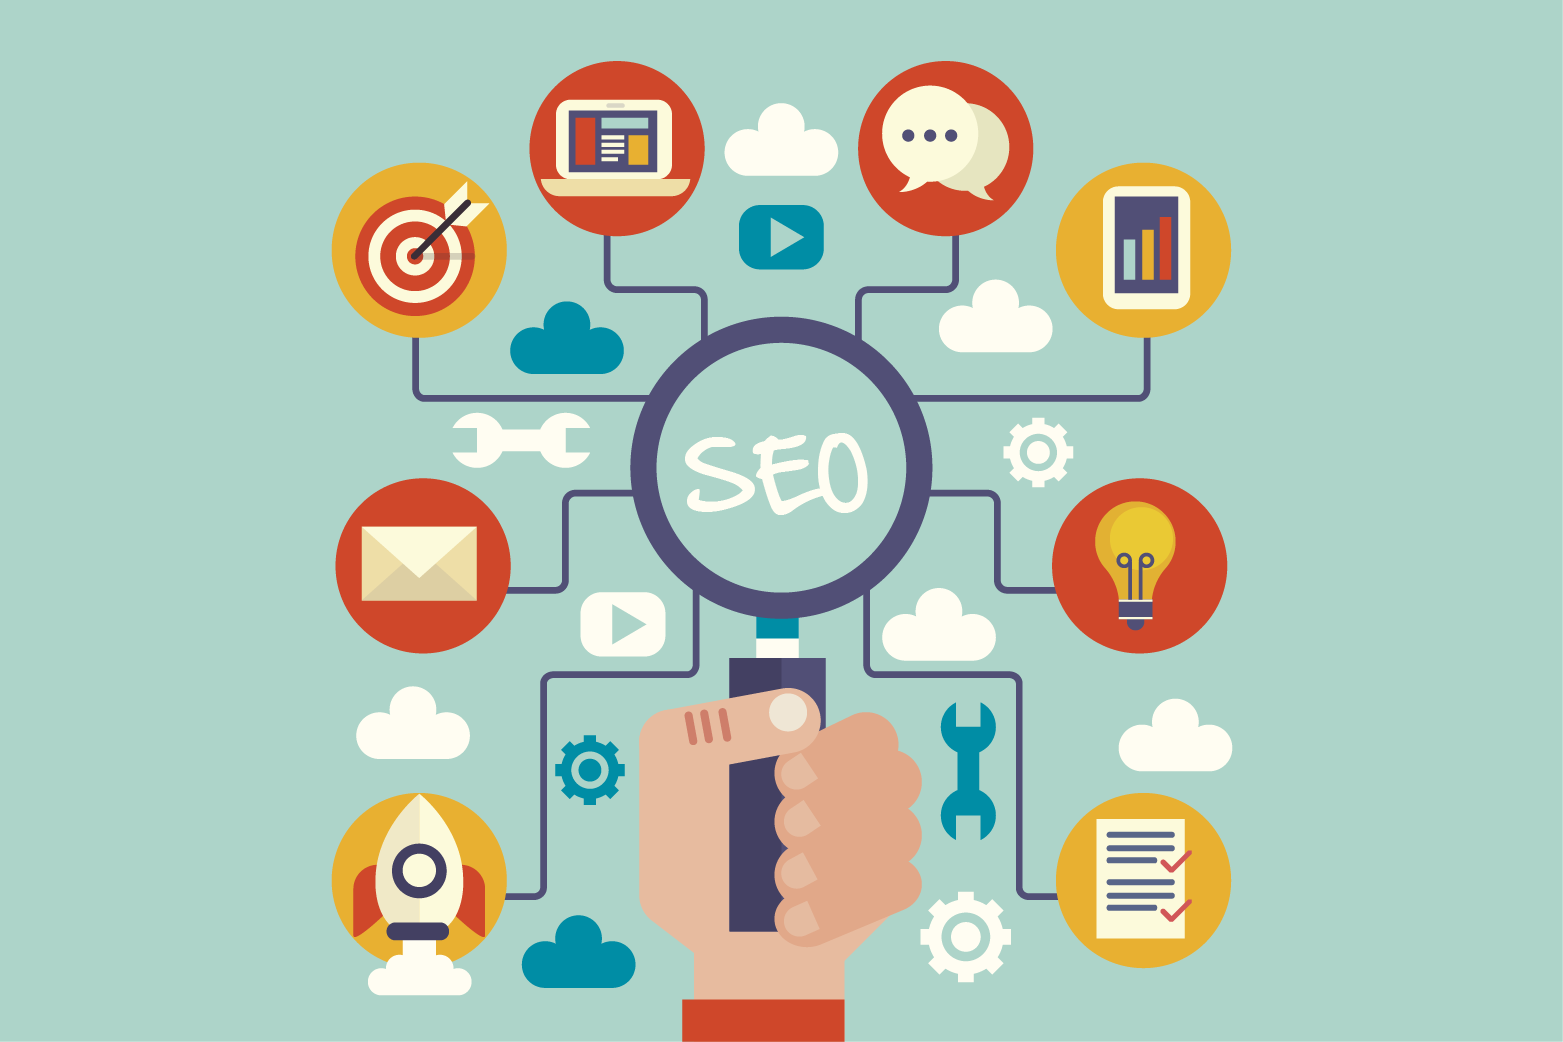 Why should your business care about SEO?